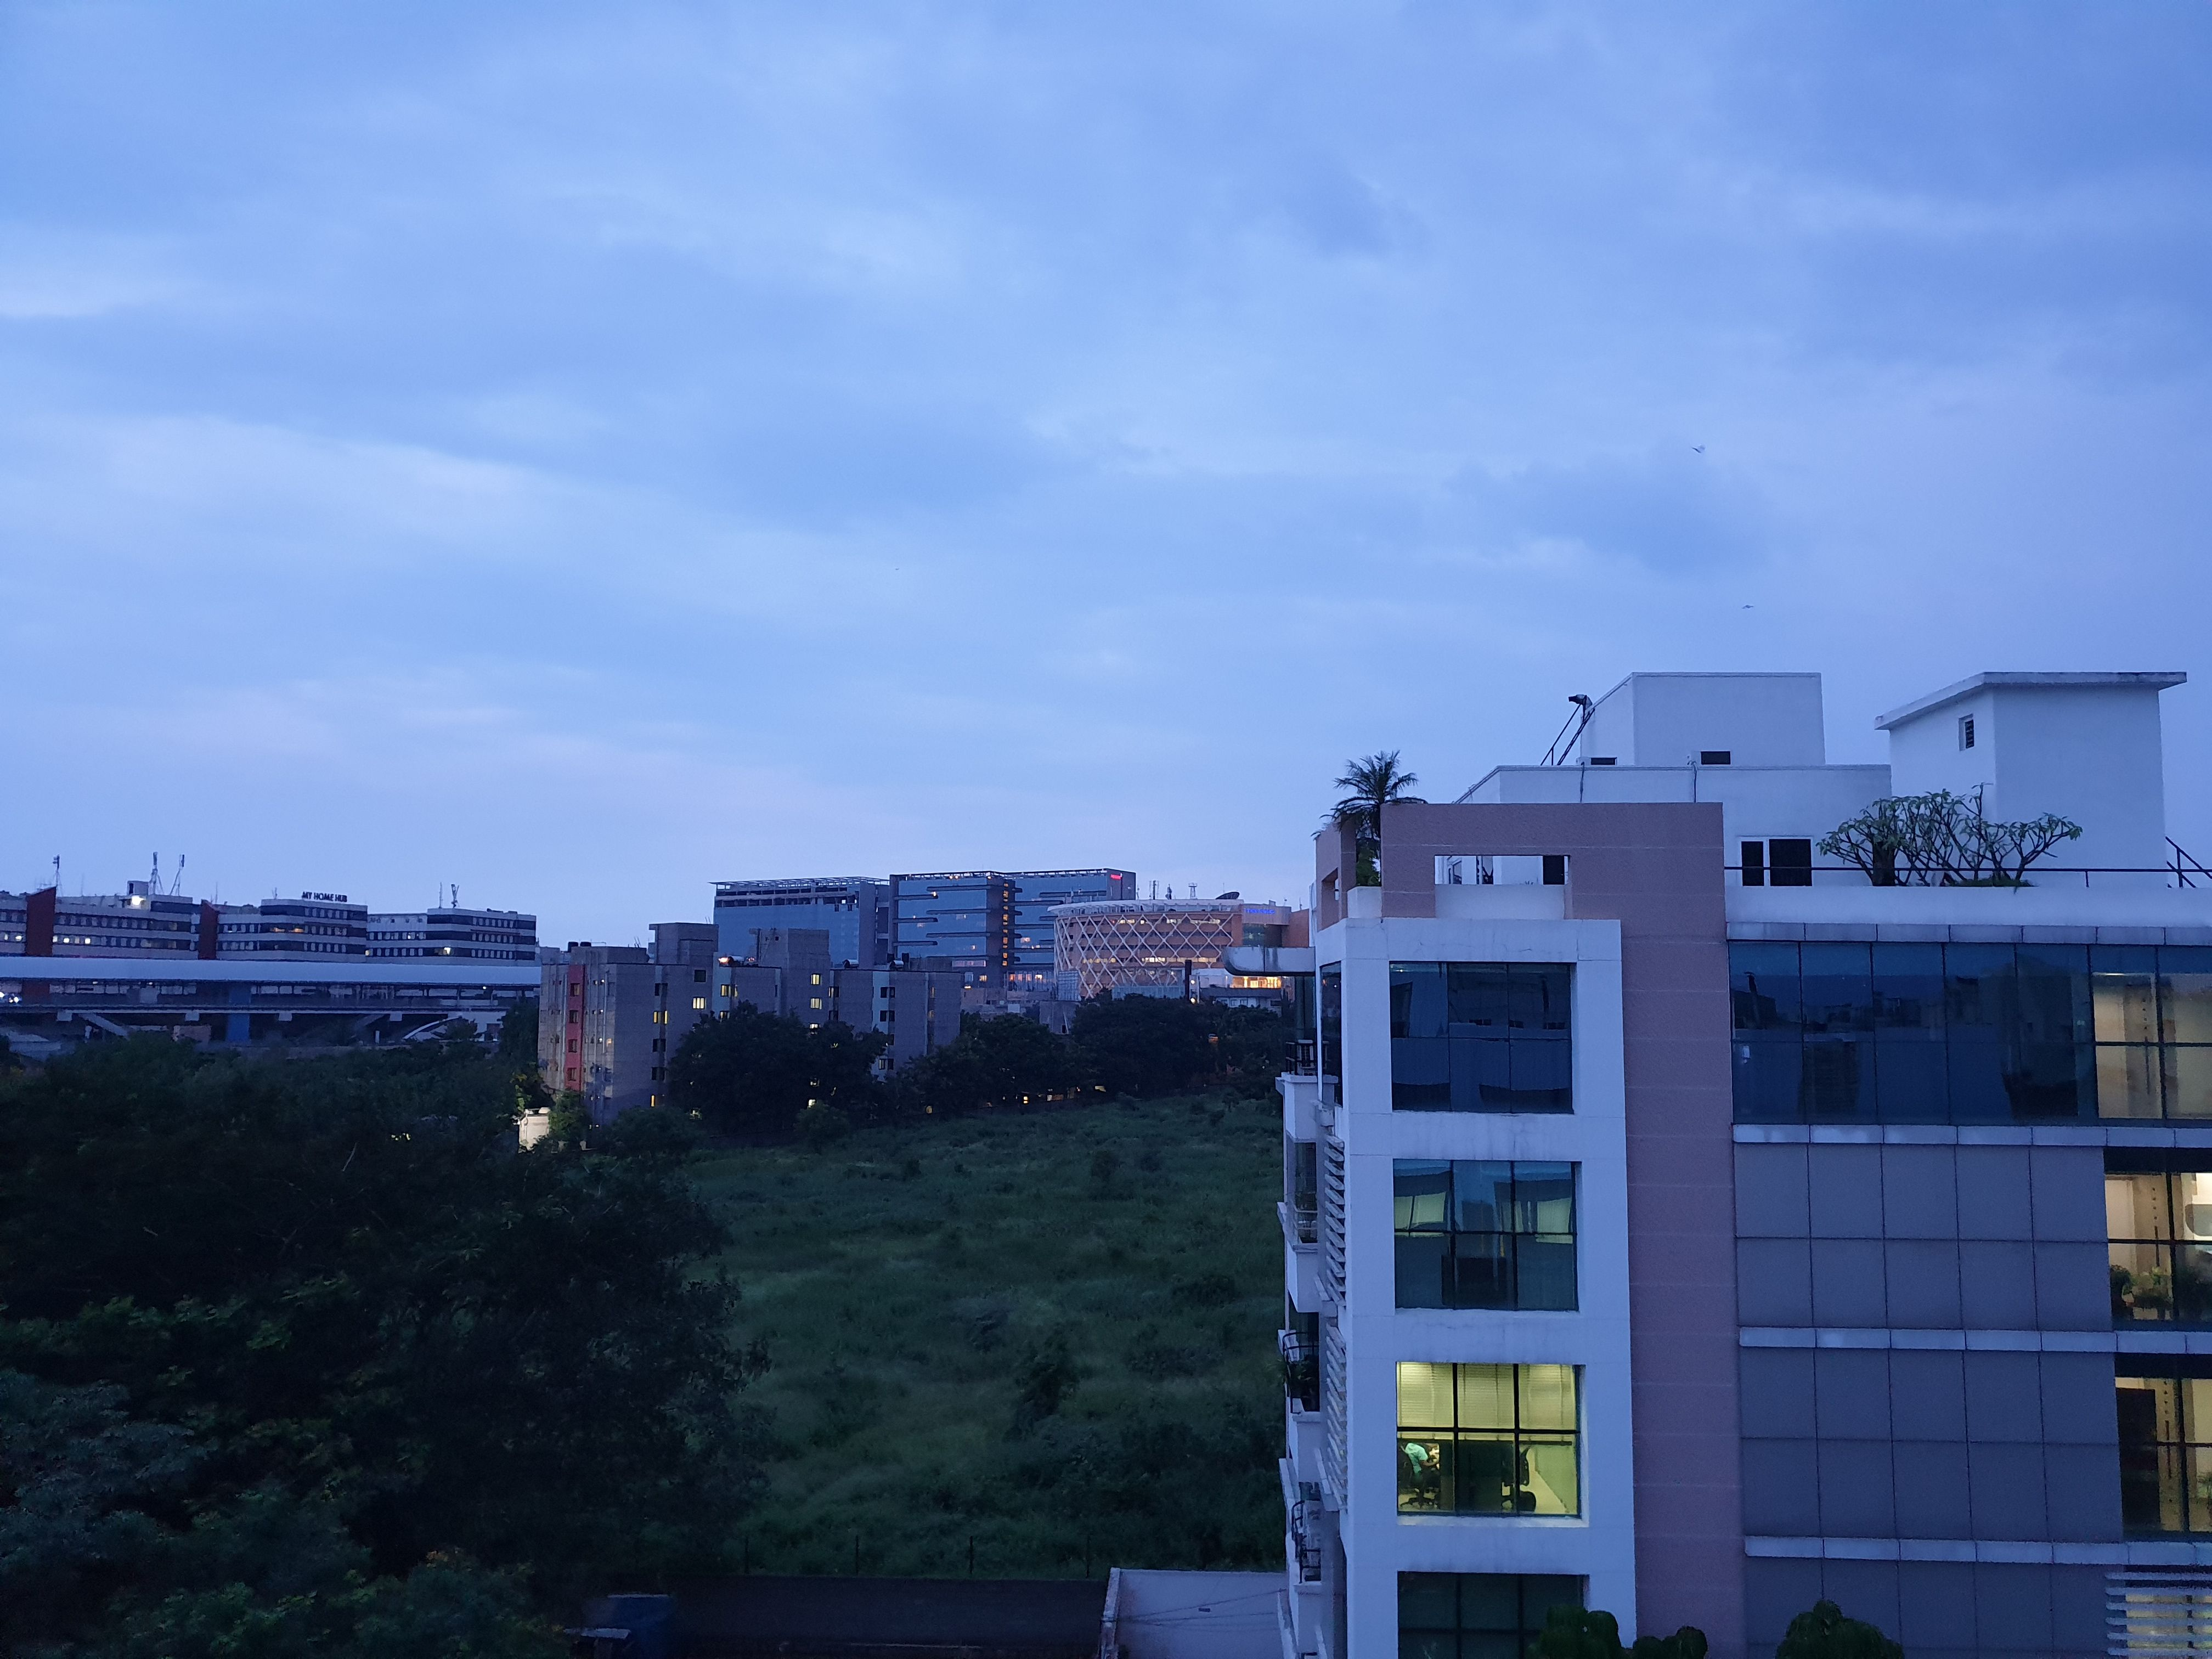 Samsung Galaxy Note 9 Camera Sample - Outdoor Twilight Wide-Angle Lens